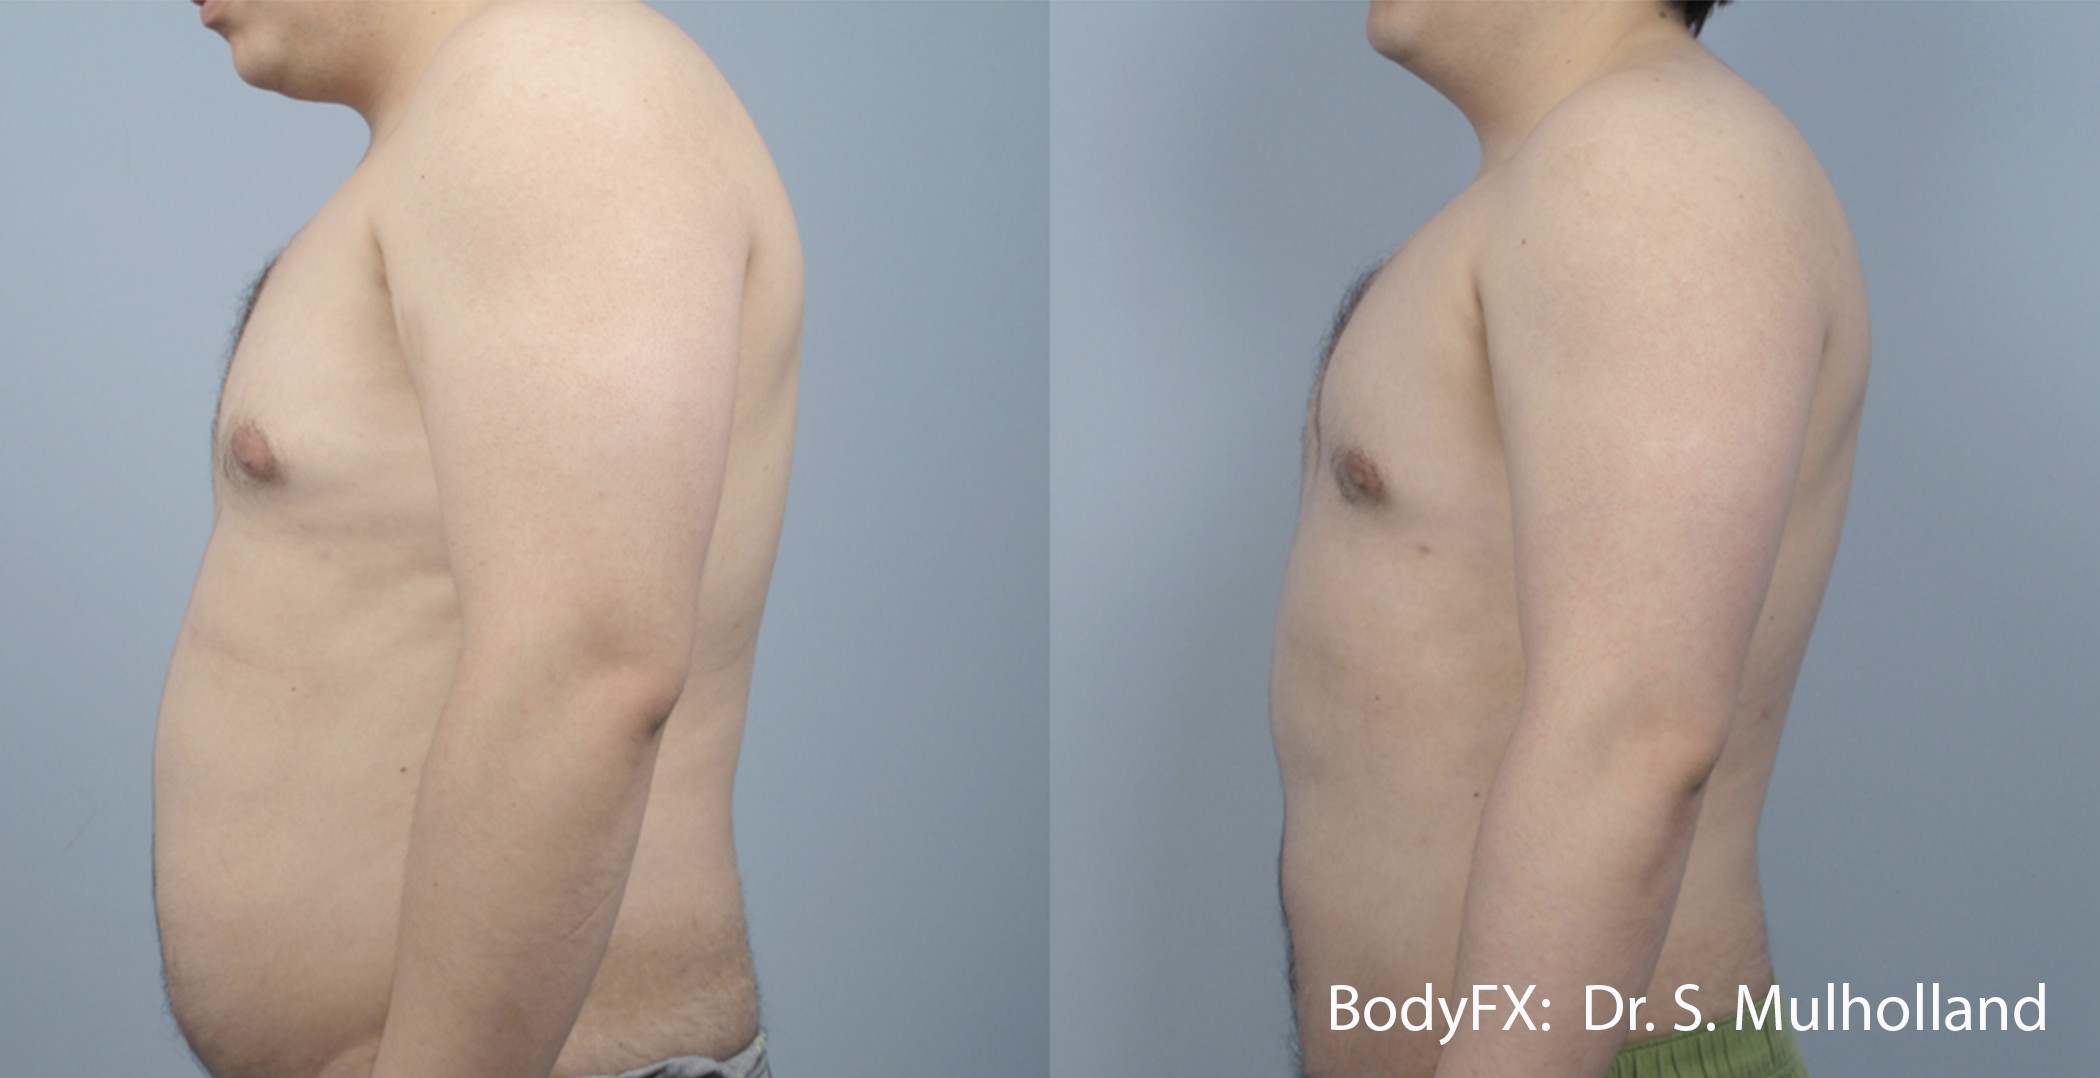 SM_BODYFX_5a_Male_LS.jpg